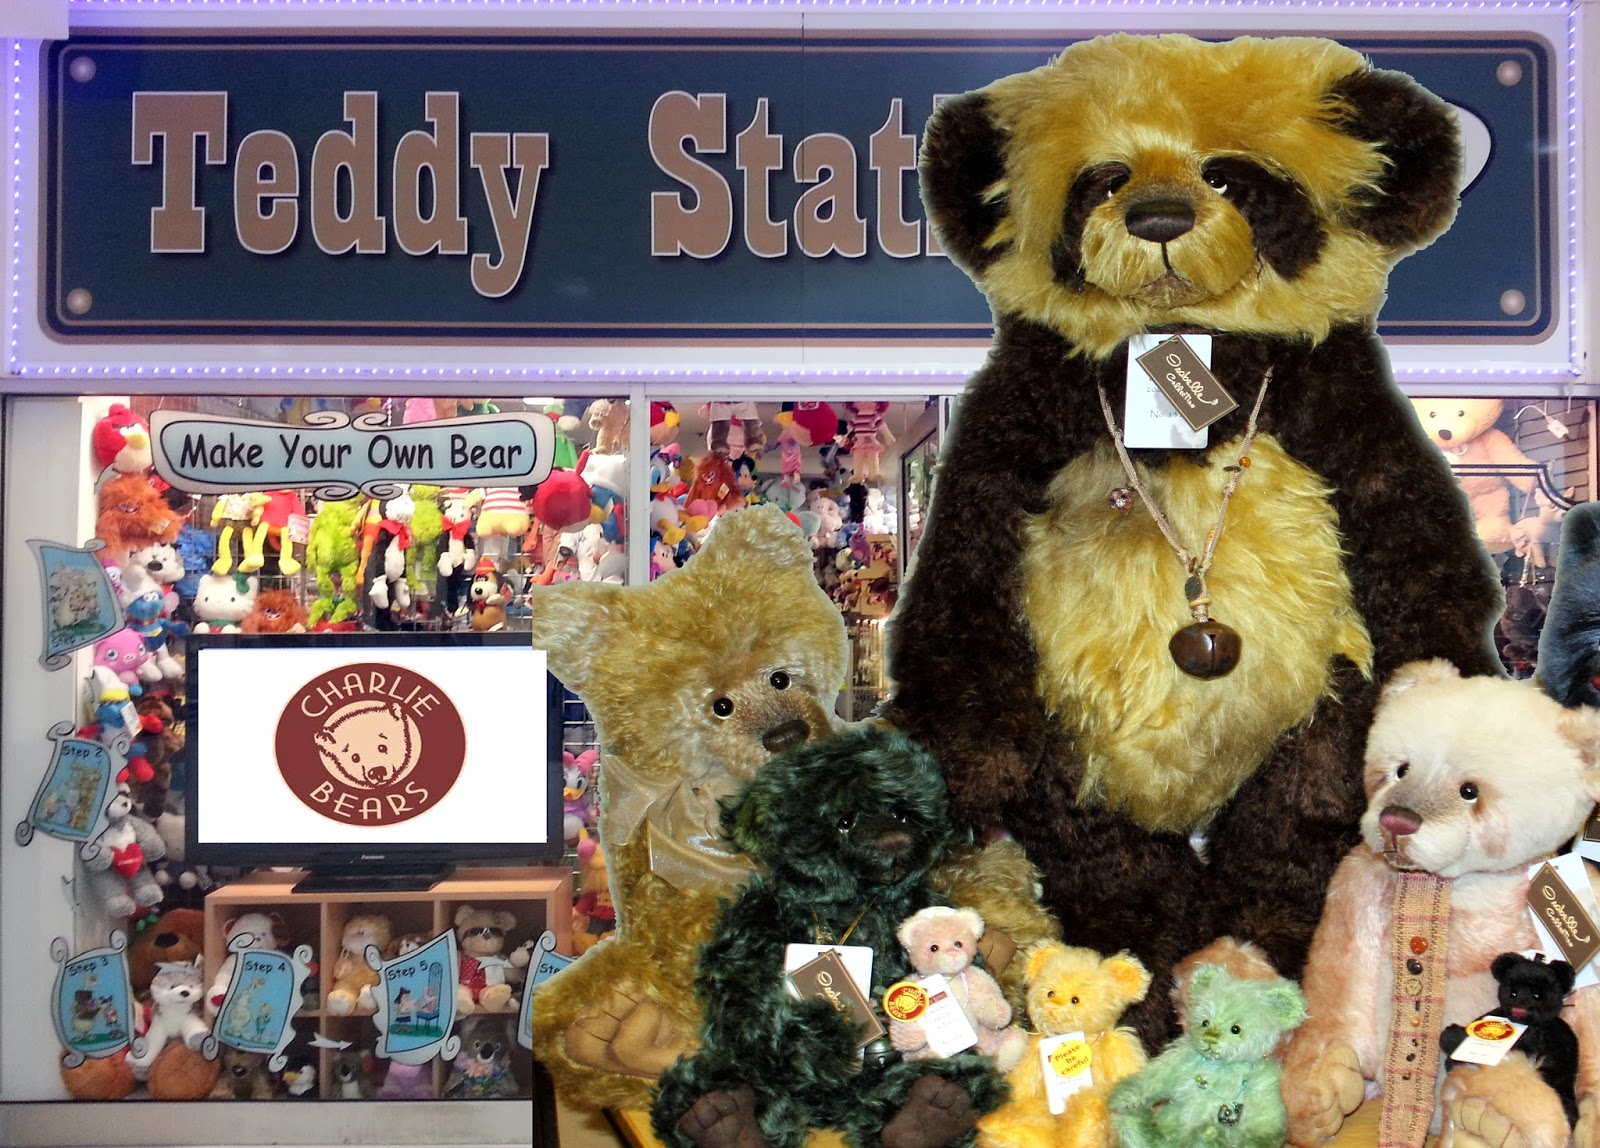 http://www.teddystation.co.uk/charlie-bears-isabelle-collection-c-45.html